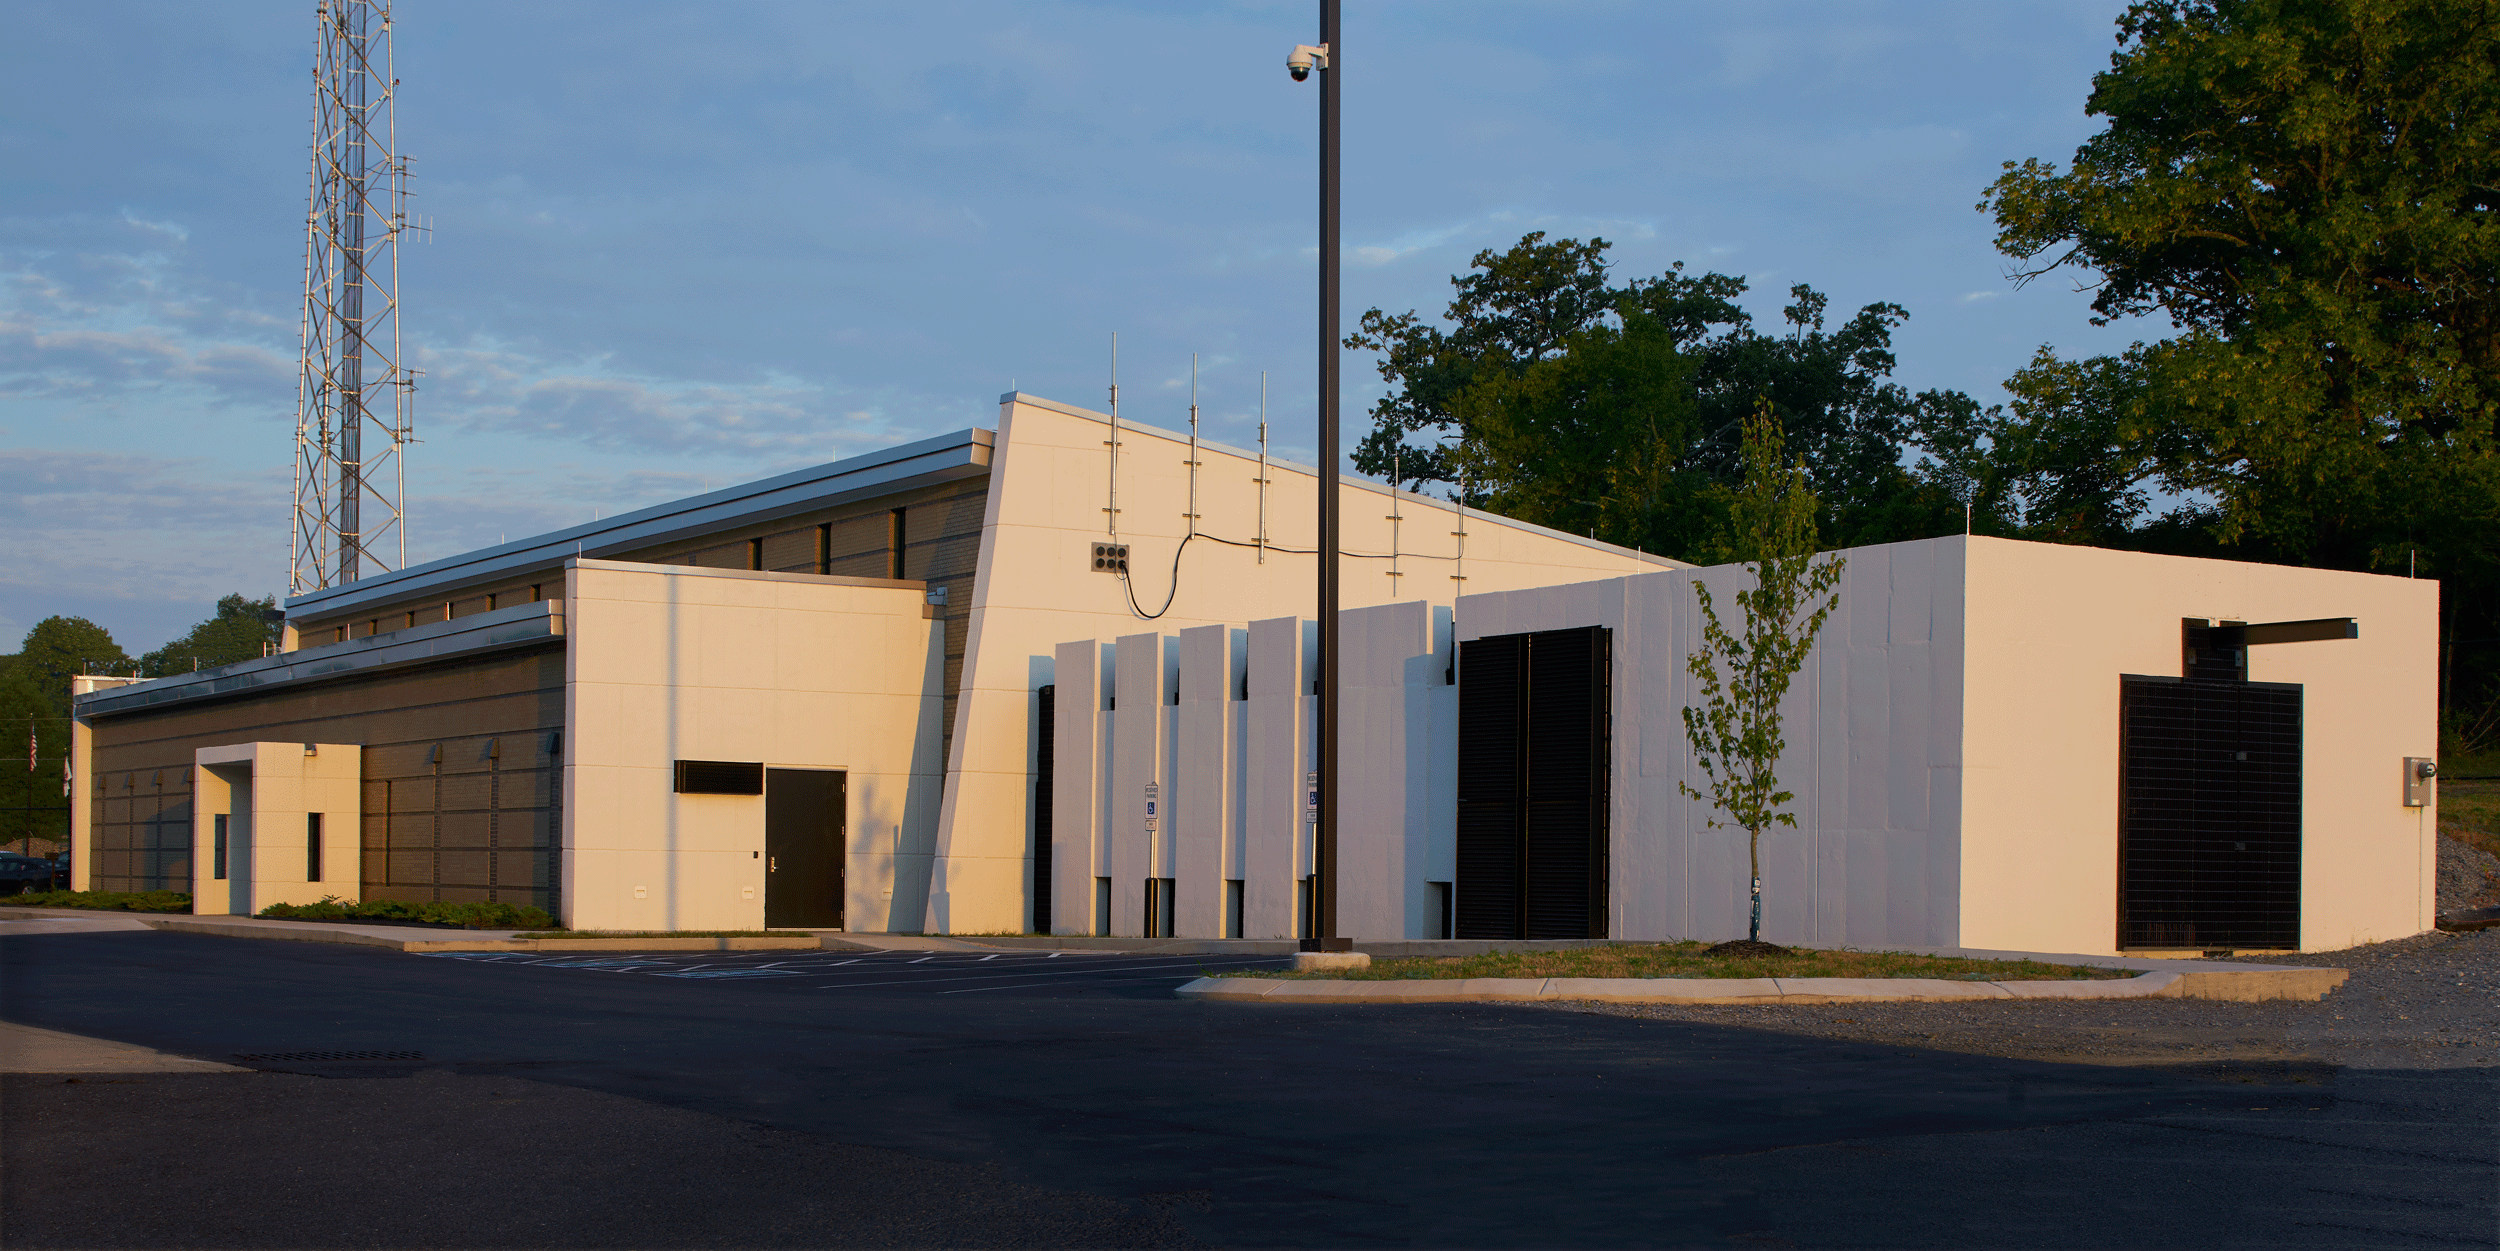 exterior view from mechanical yard